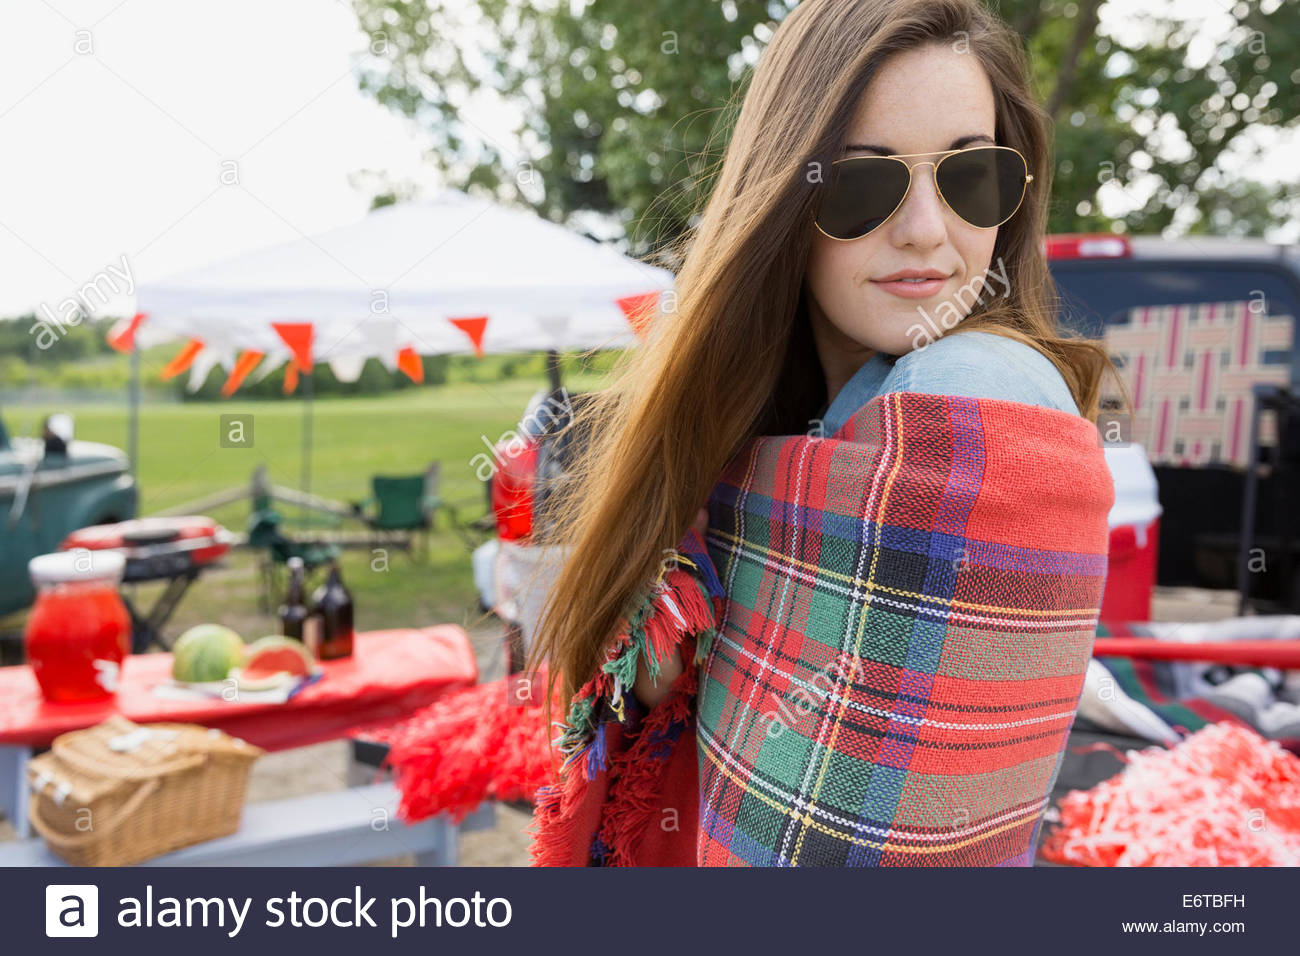 Woman wrapped in blanket at tailgate barbecue - Stock Image